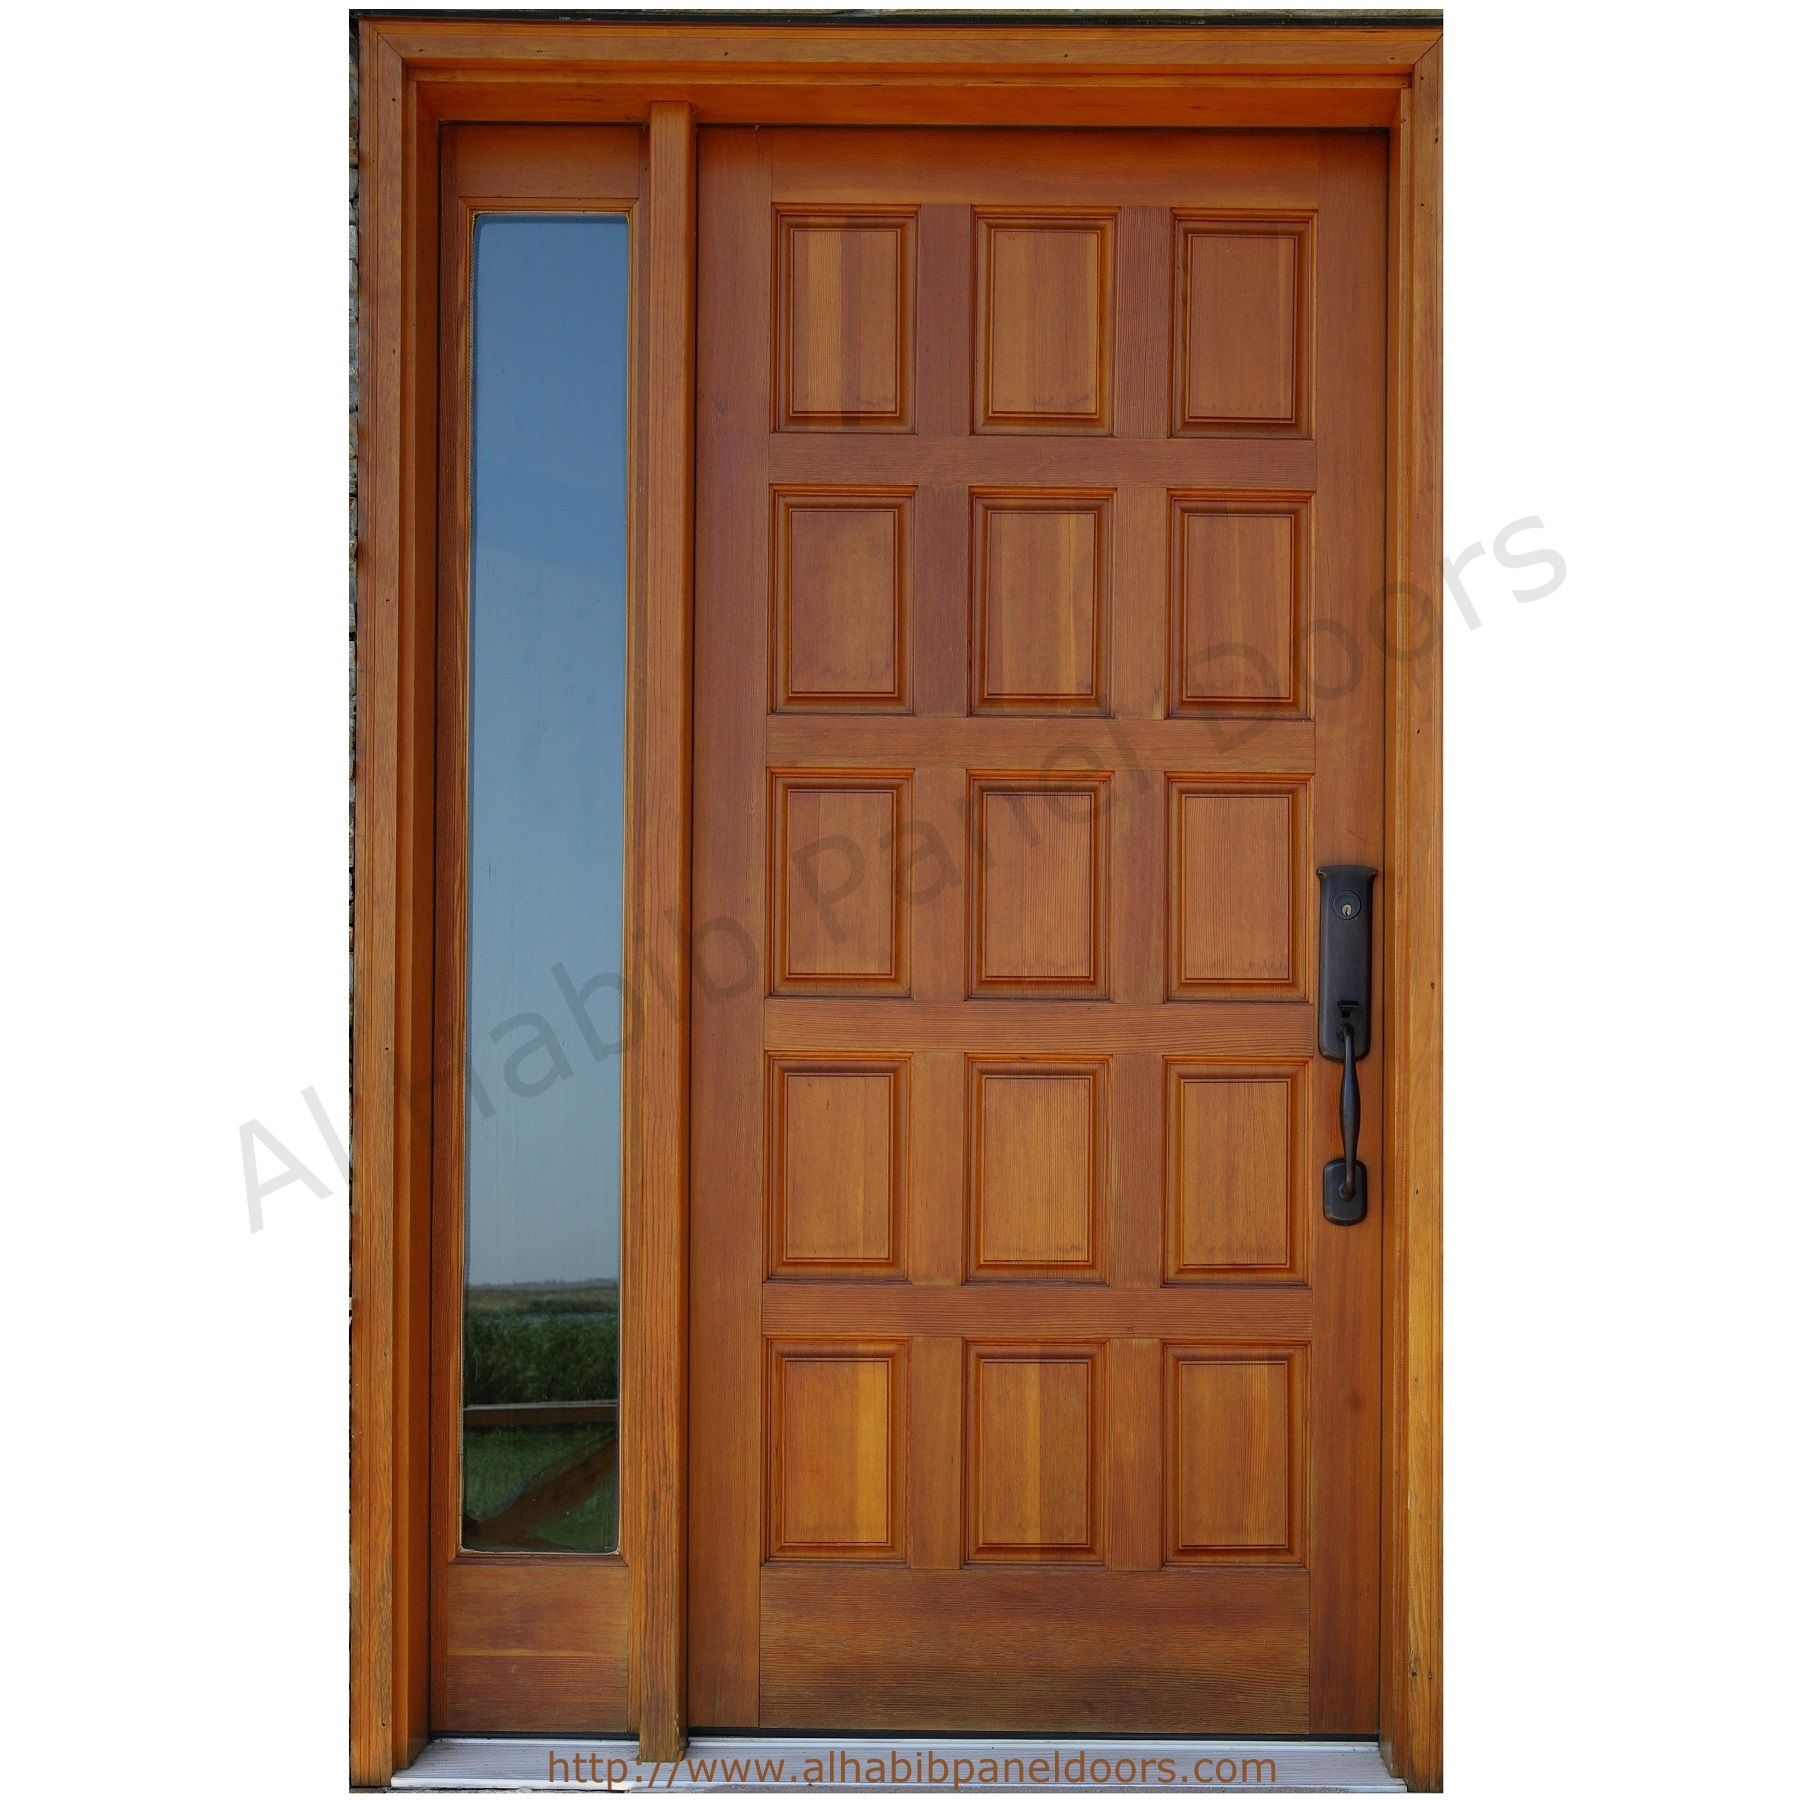 Solid wooden panel door with frame hpd427 solid wood doors al solid wooden panel door with frame hpd427 solid wood doors al